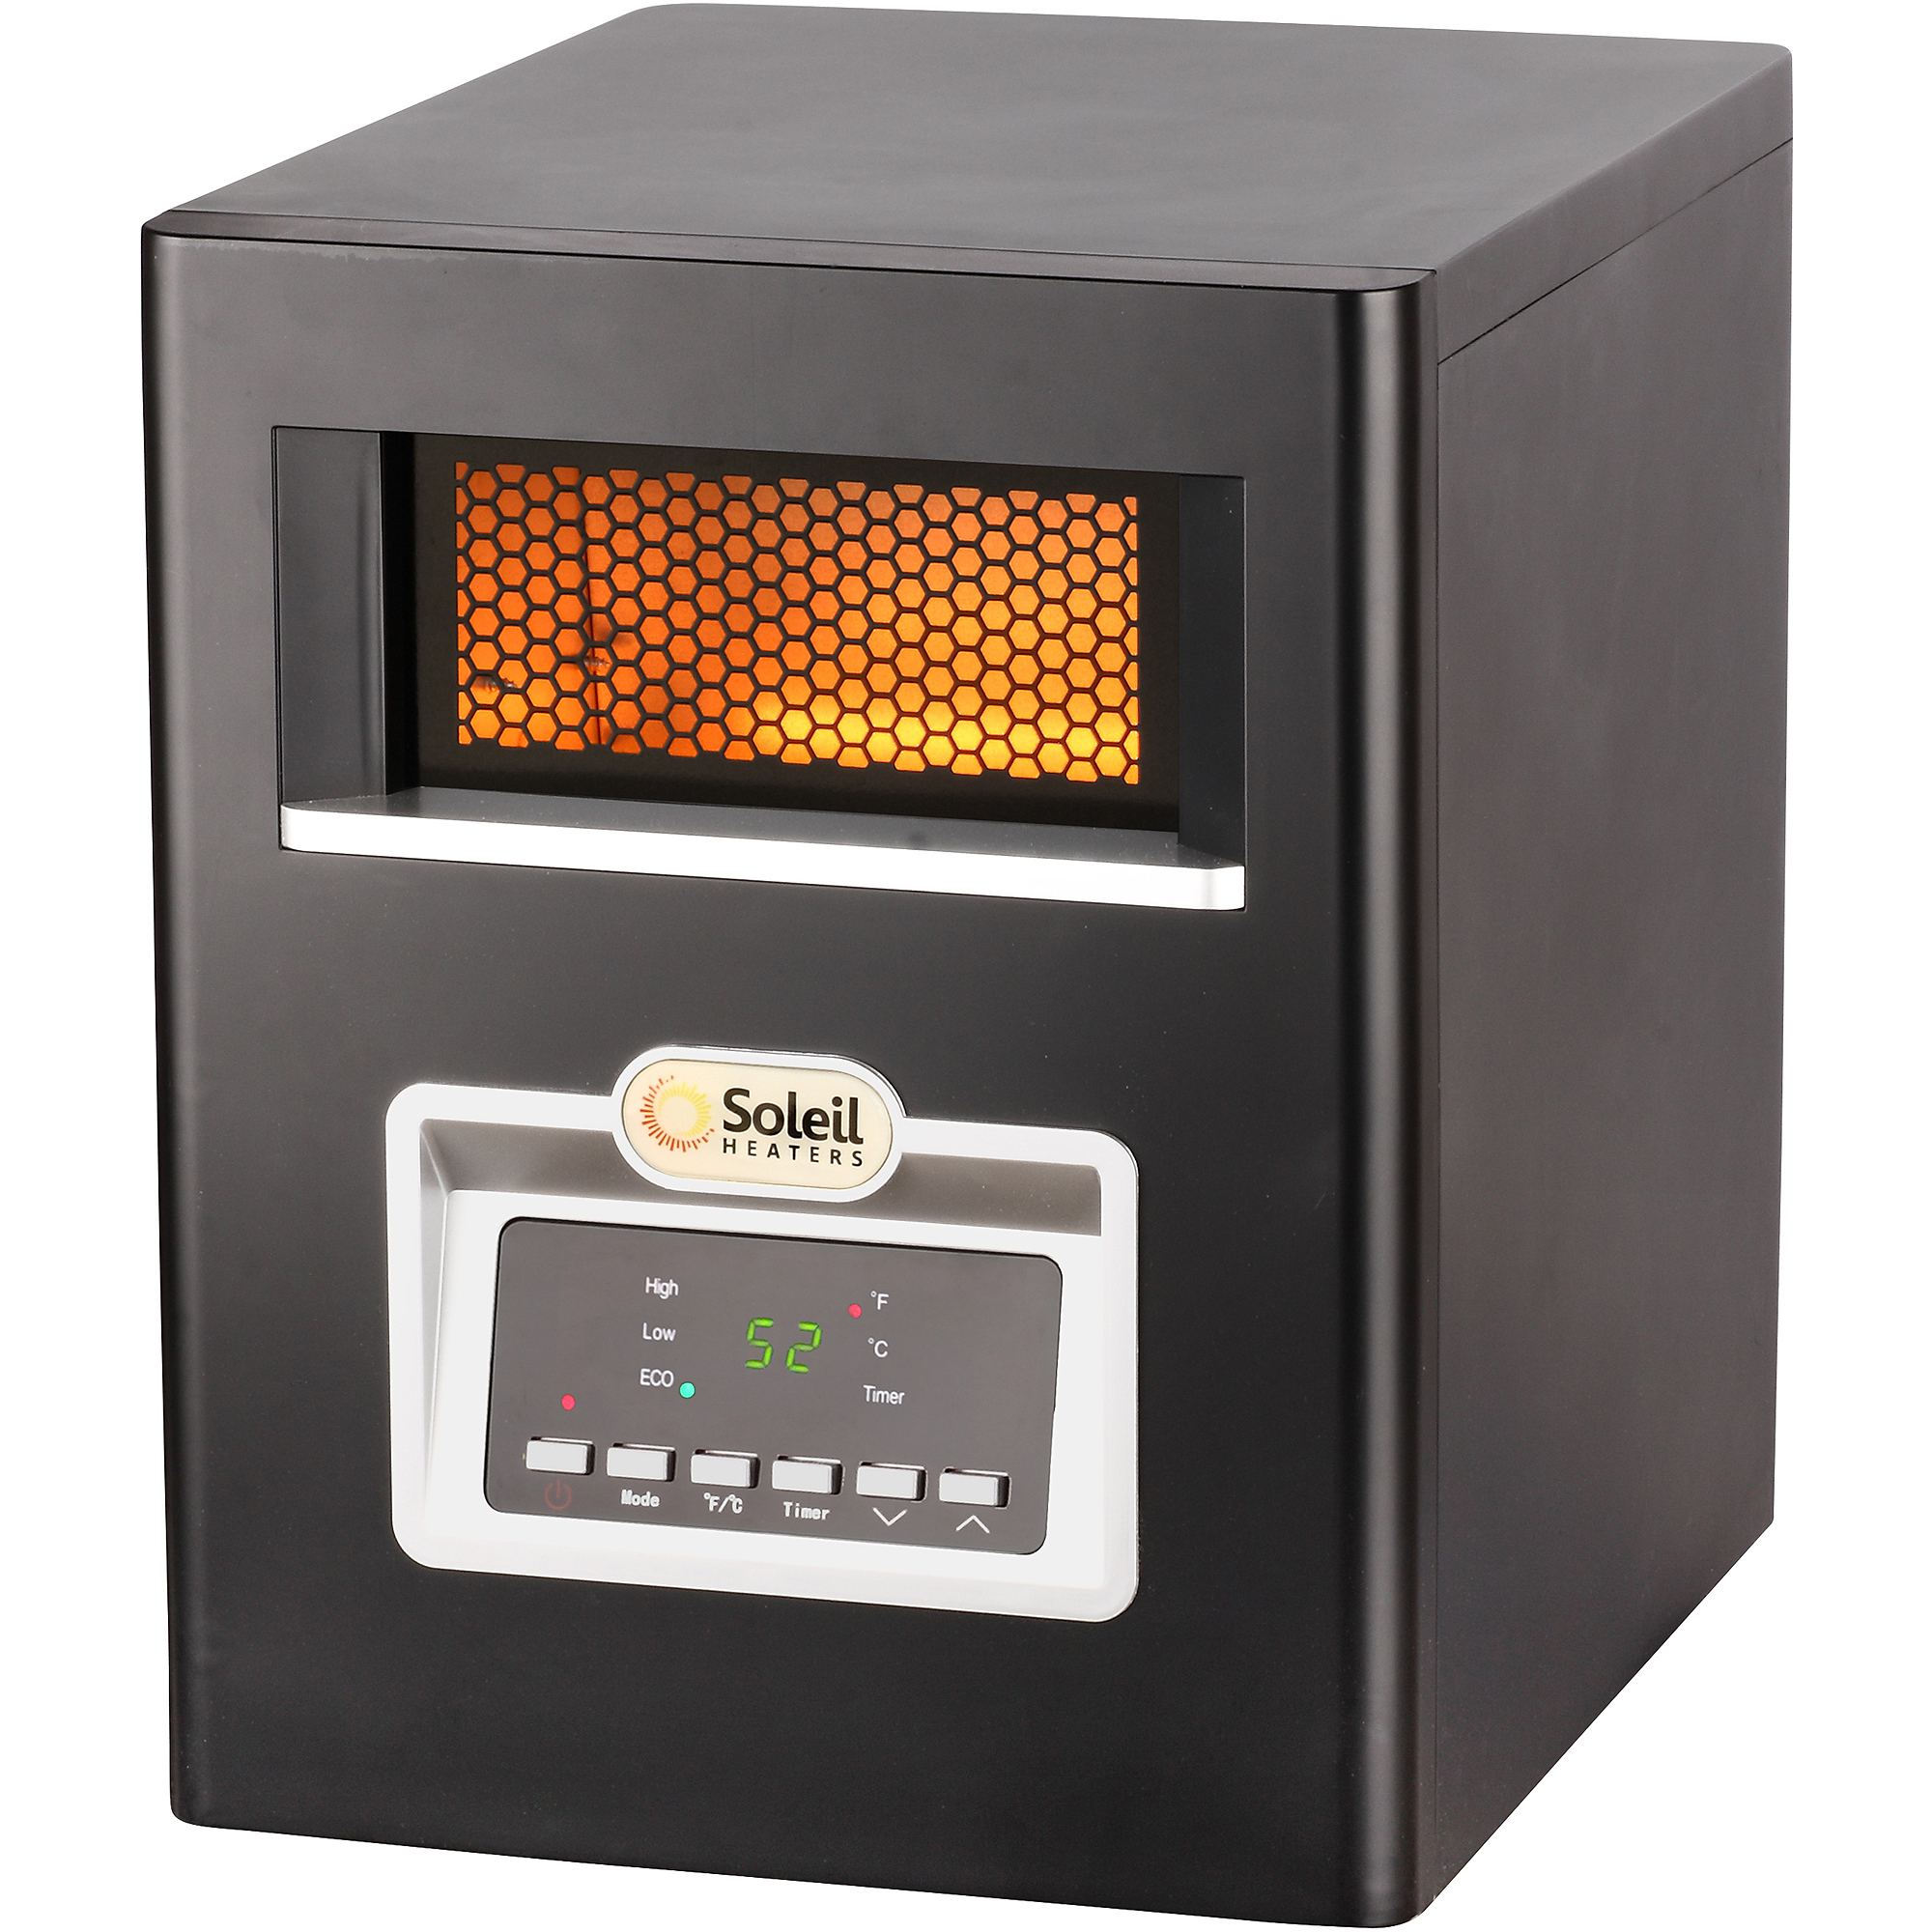 Soleil Electric Infrared Cabinet Space Heater, 1500W, PH-91F